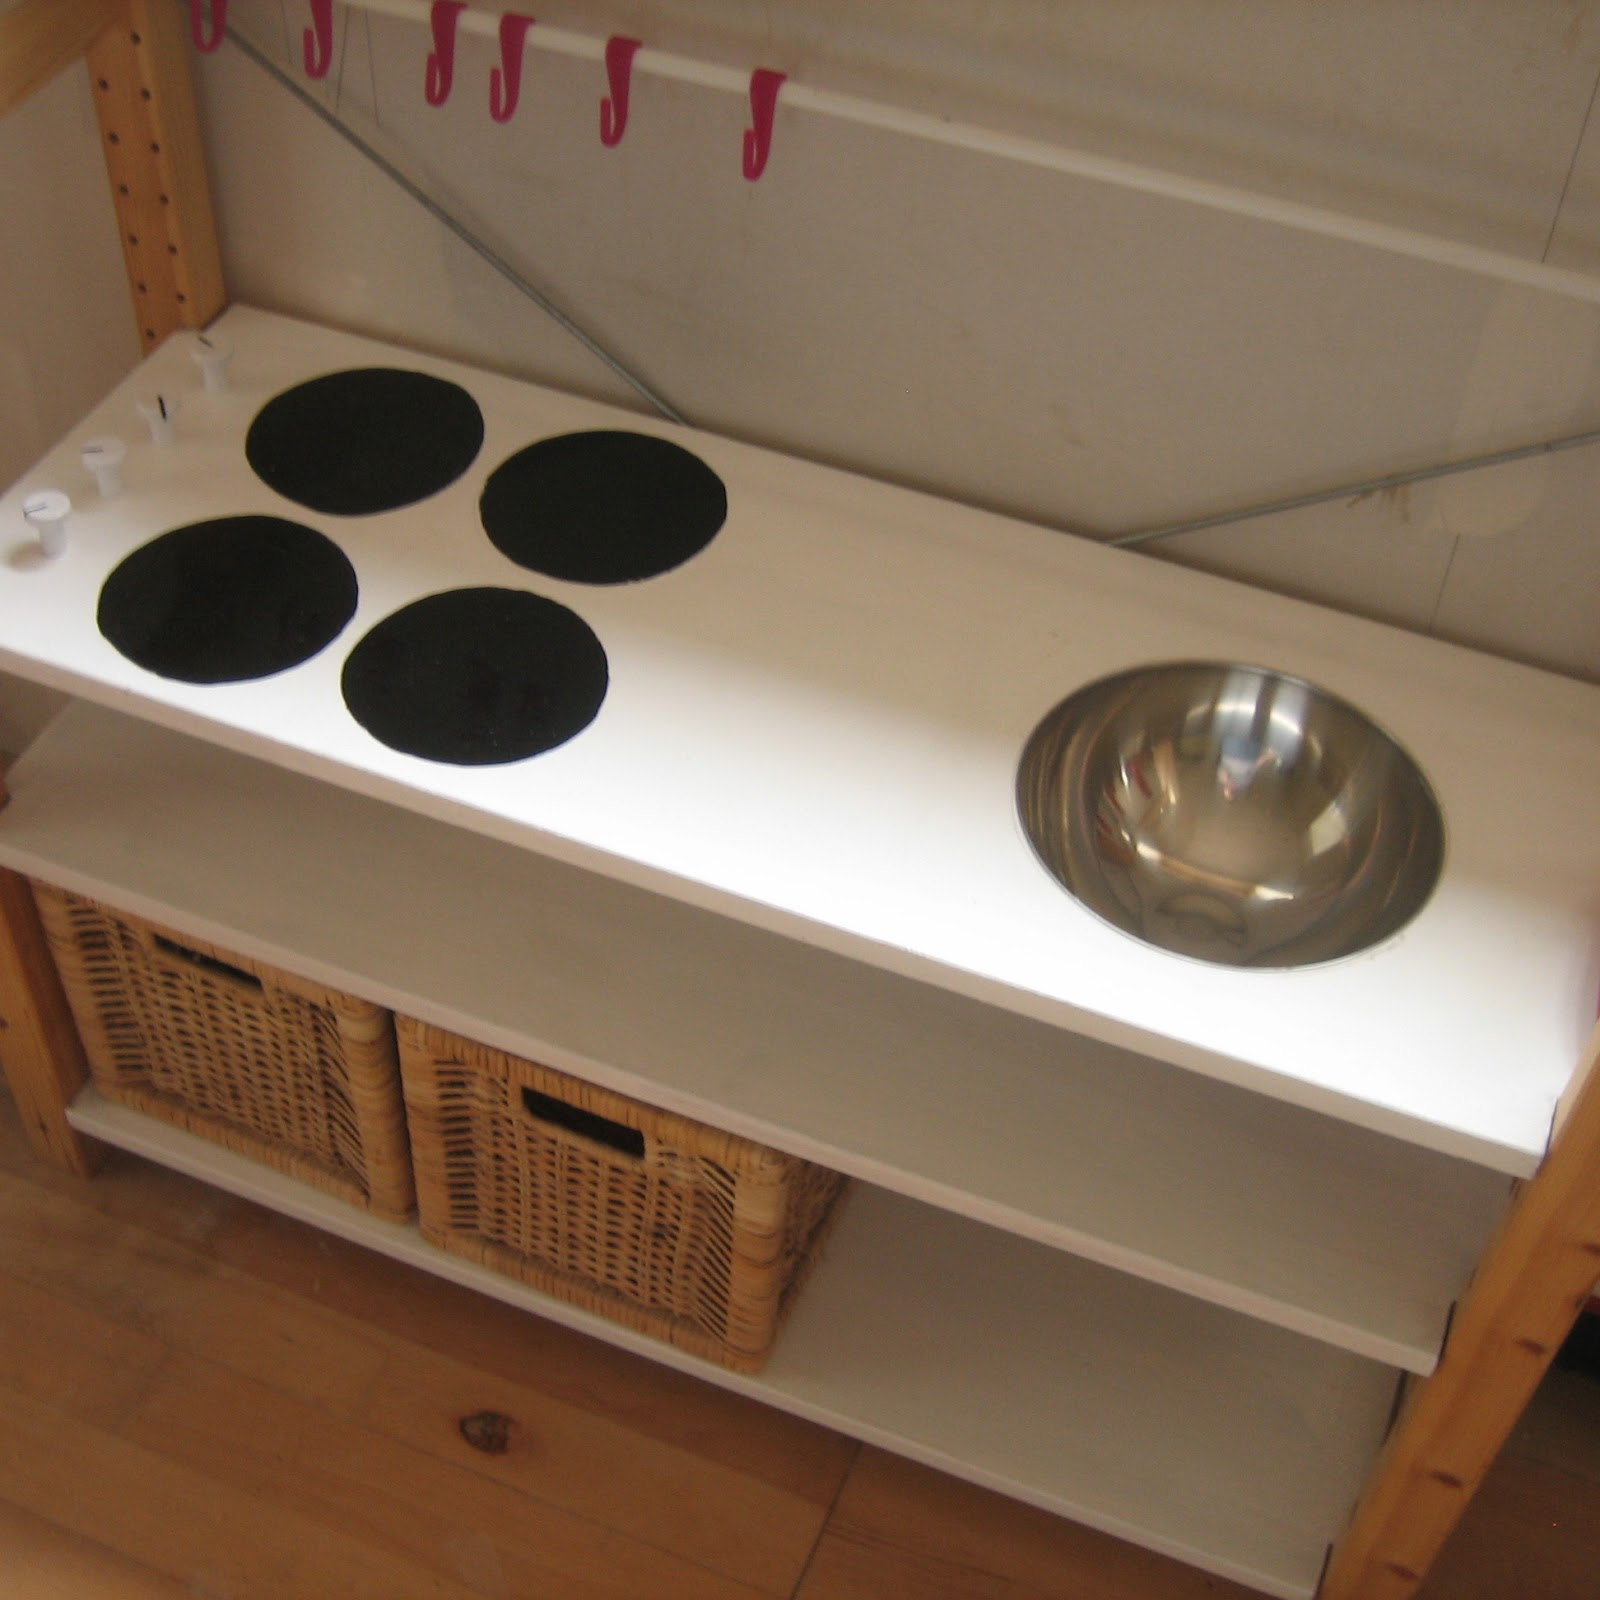 Our Handmade Home: How to make a Play Kitchen - Ikea Toy Kitchen